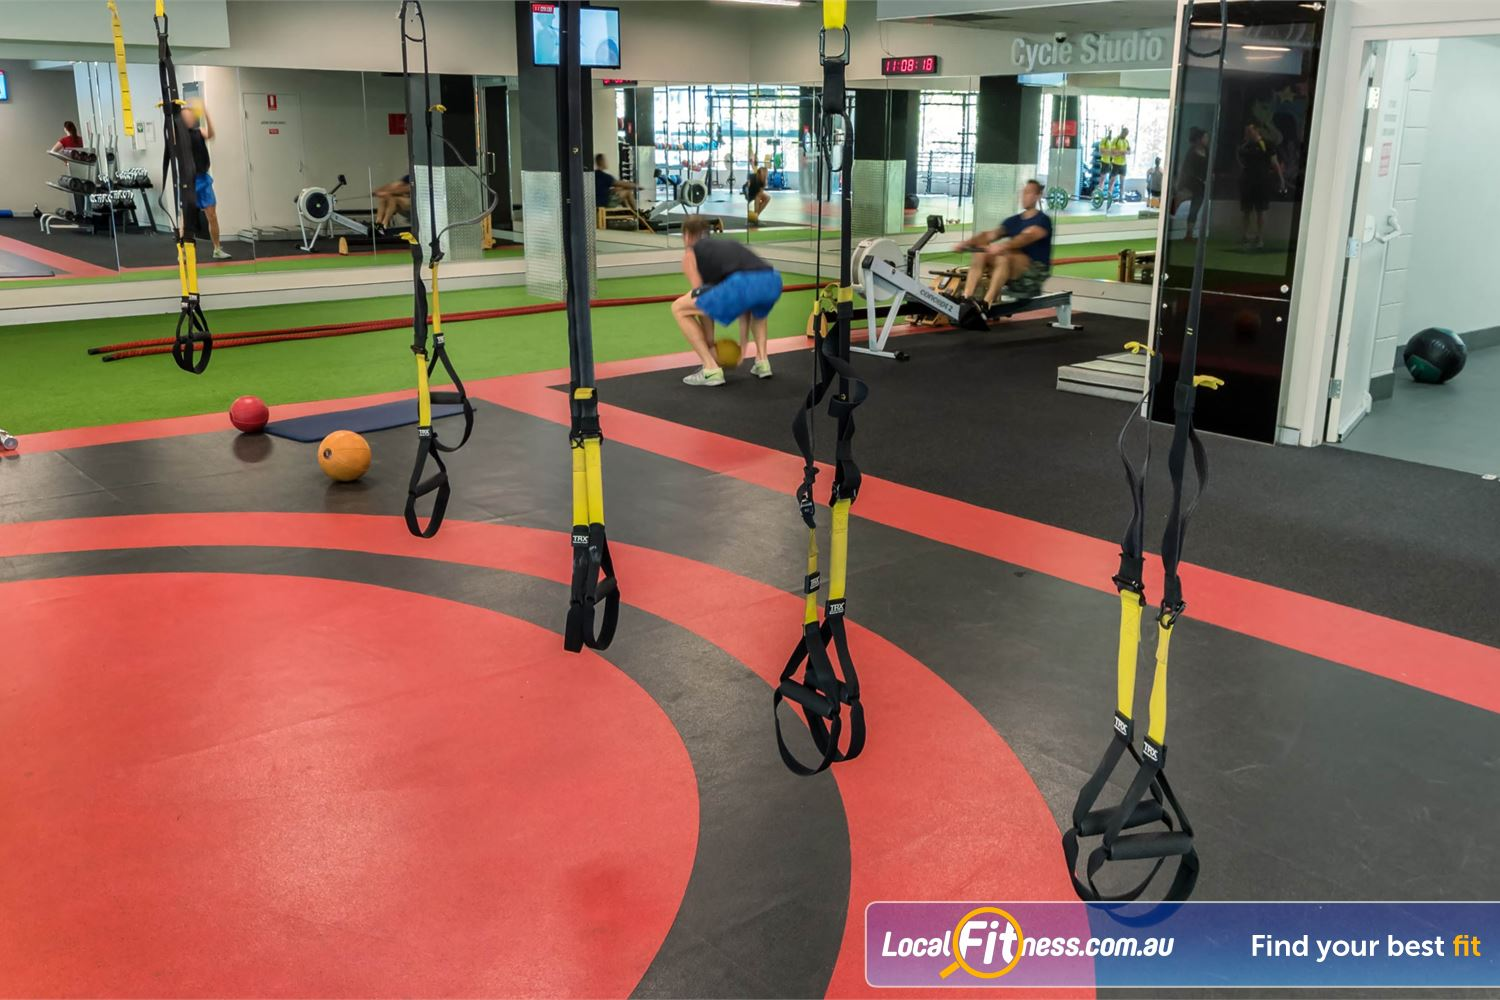 Fitness First Platinum Kings Cross Potts Point The dedicated Kings Cross HIIT gym space includes TRX team training.